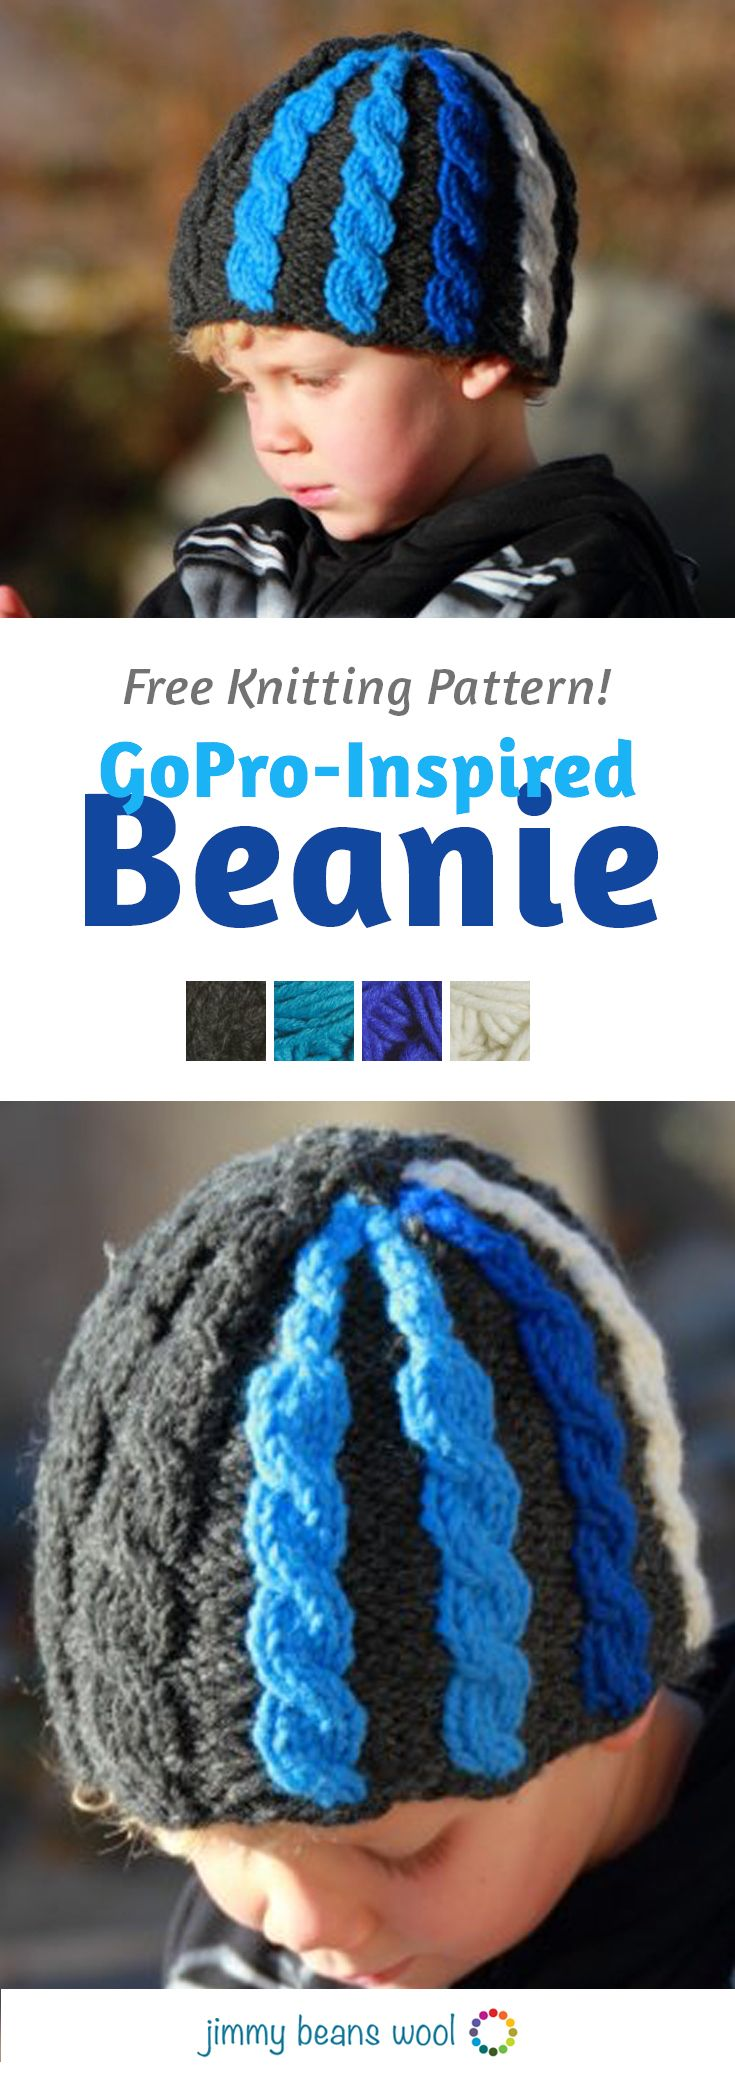 fde42d73f6a GoPro-Inspired Beanie Free Knitting Pattern